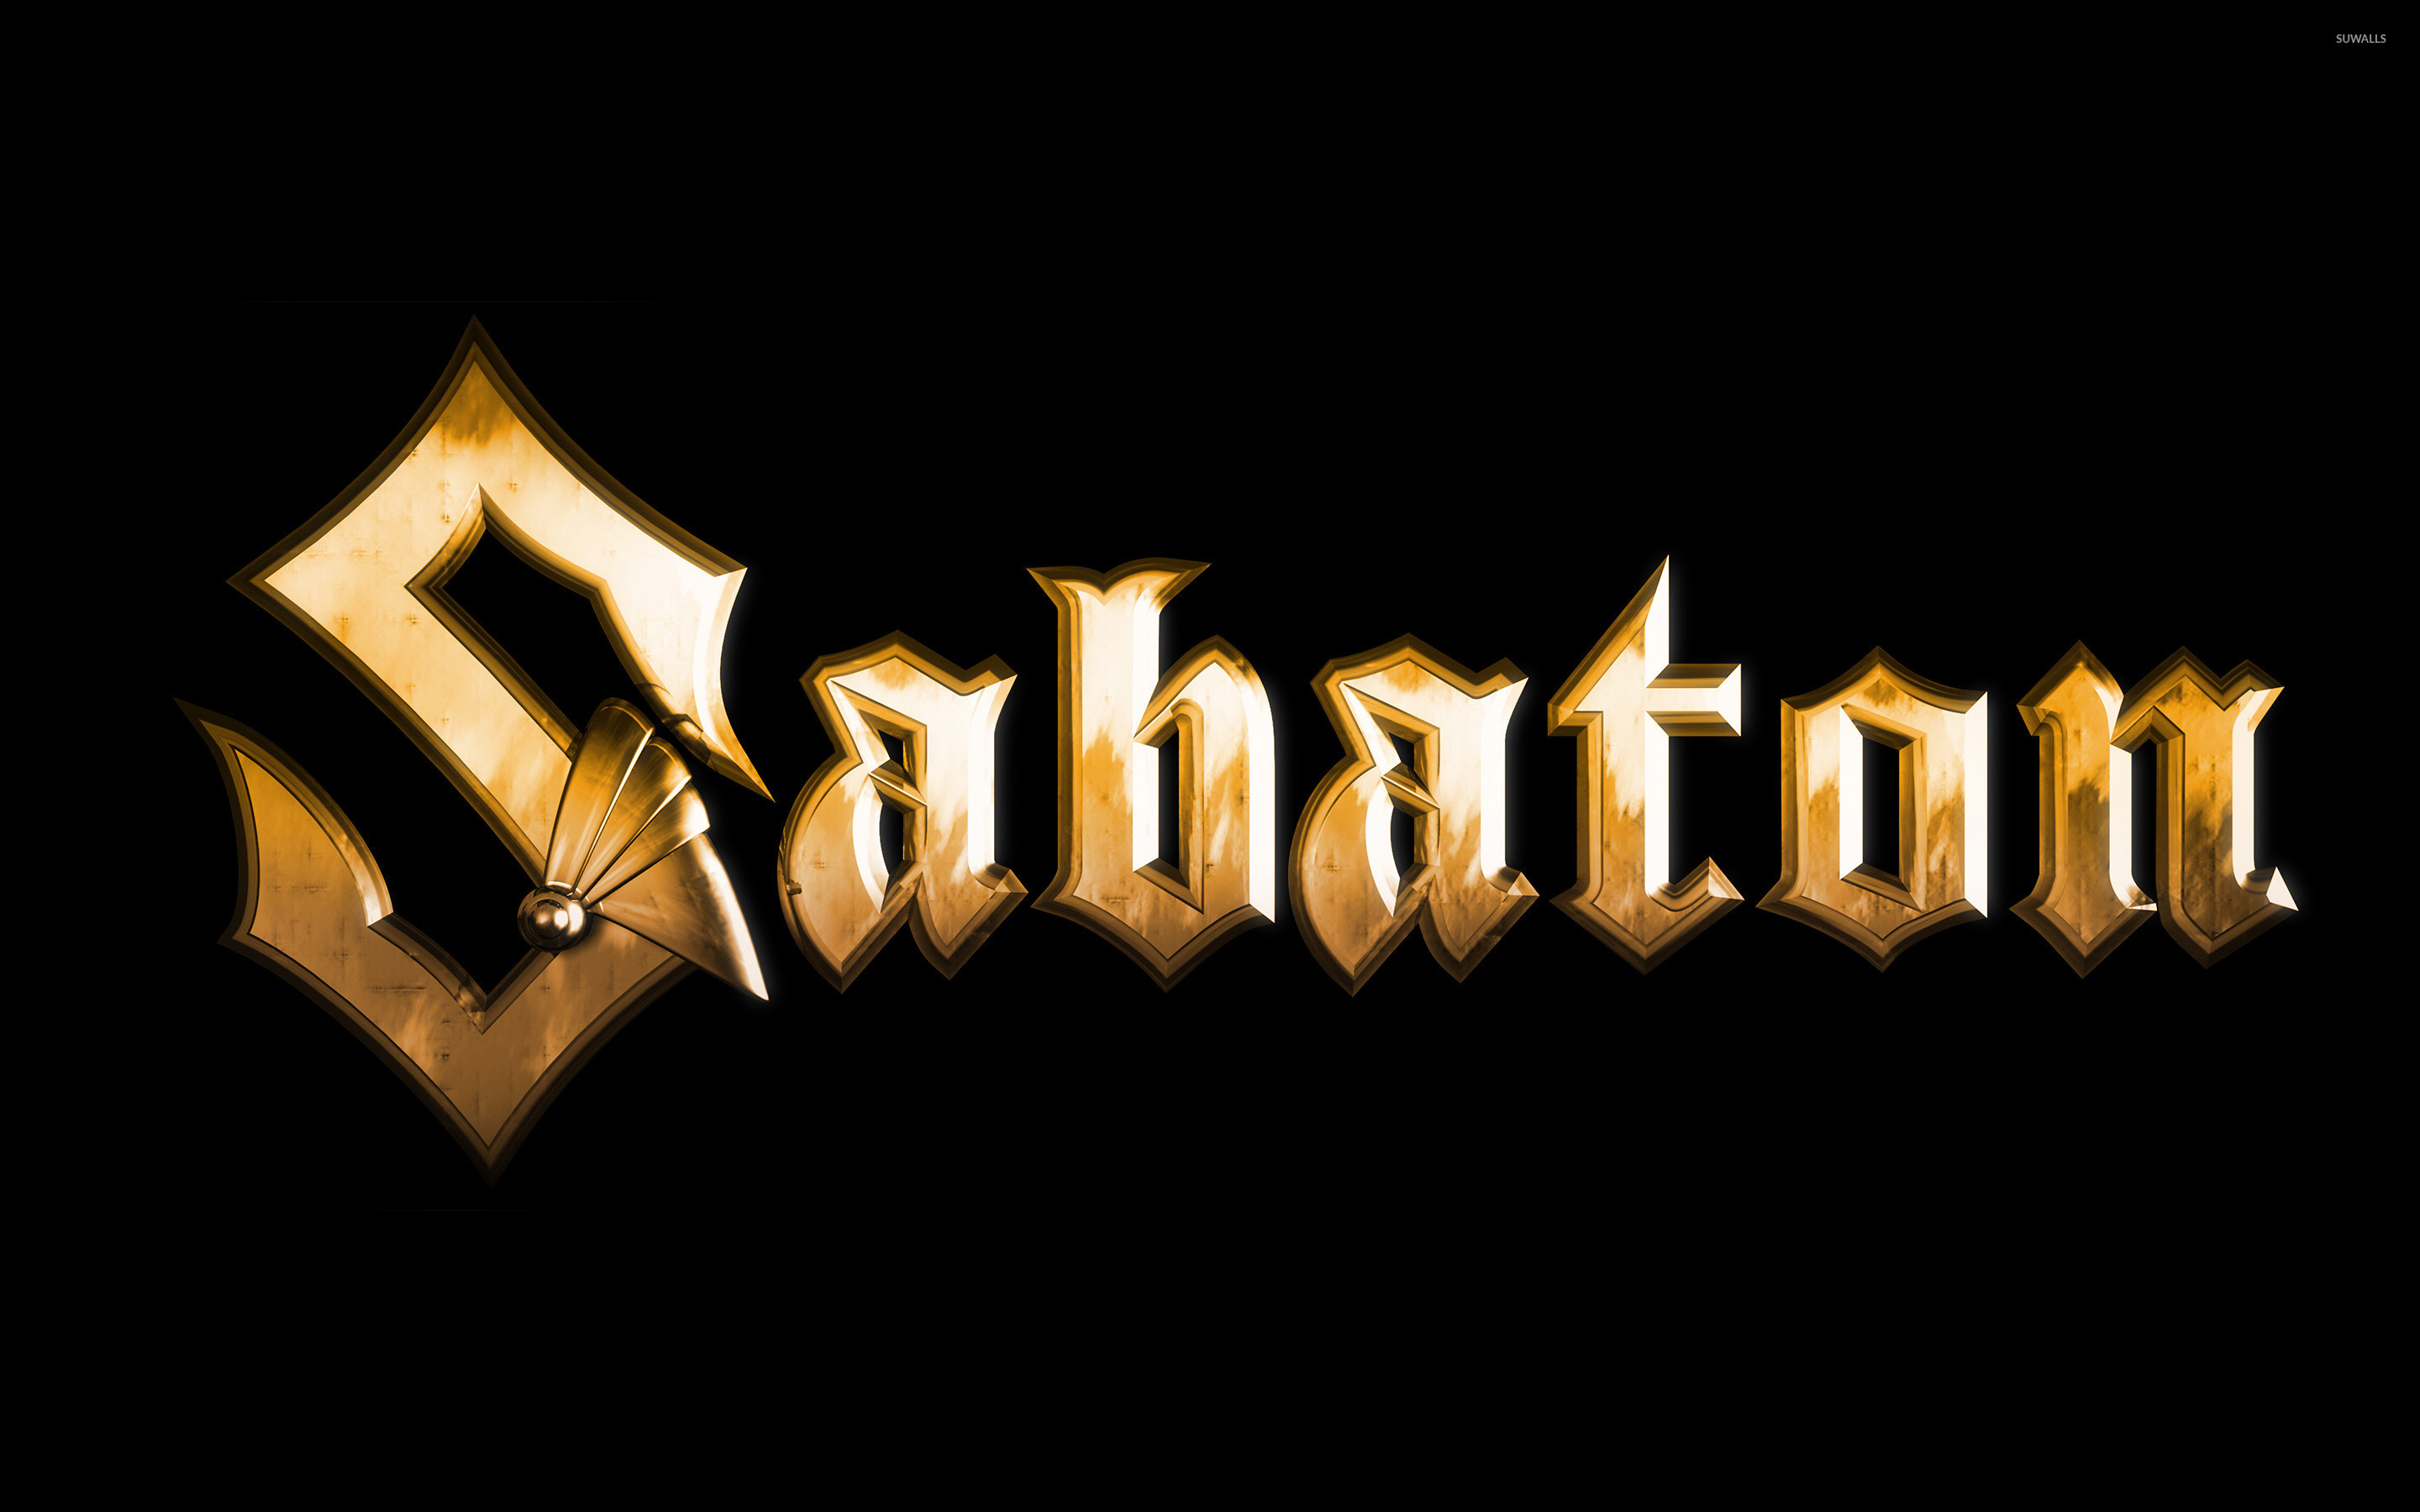 2880x1800 Sabaton Wallpapers for PC | Full HD Sabaton Pictures